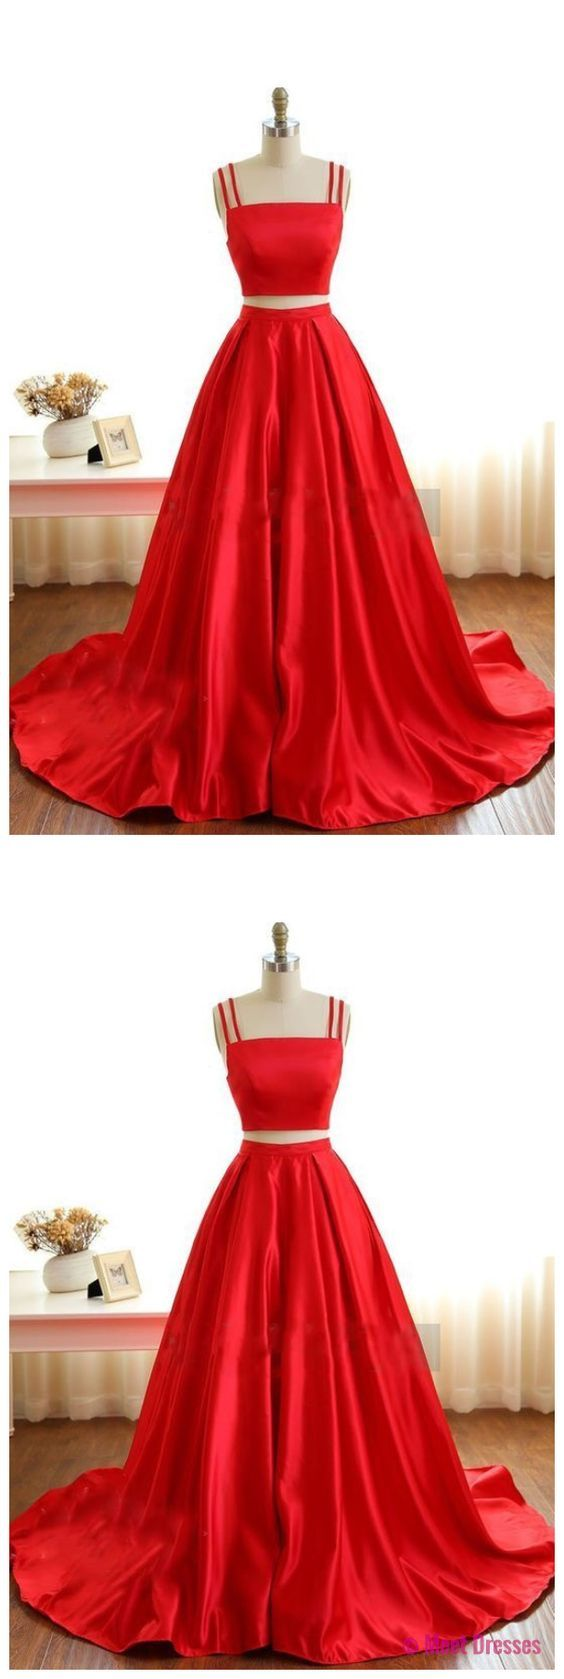 best prom dresses images on pinterest